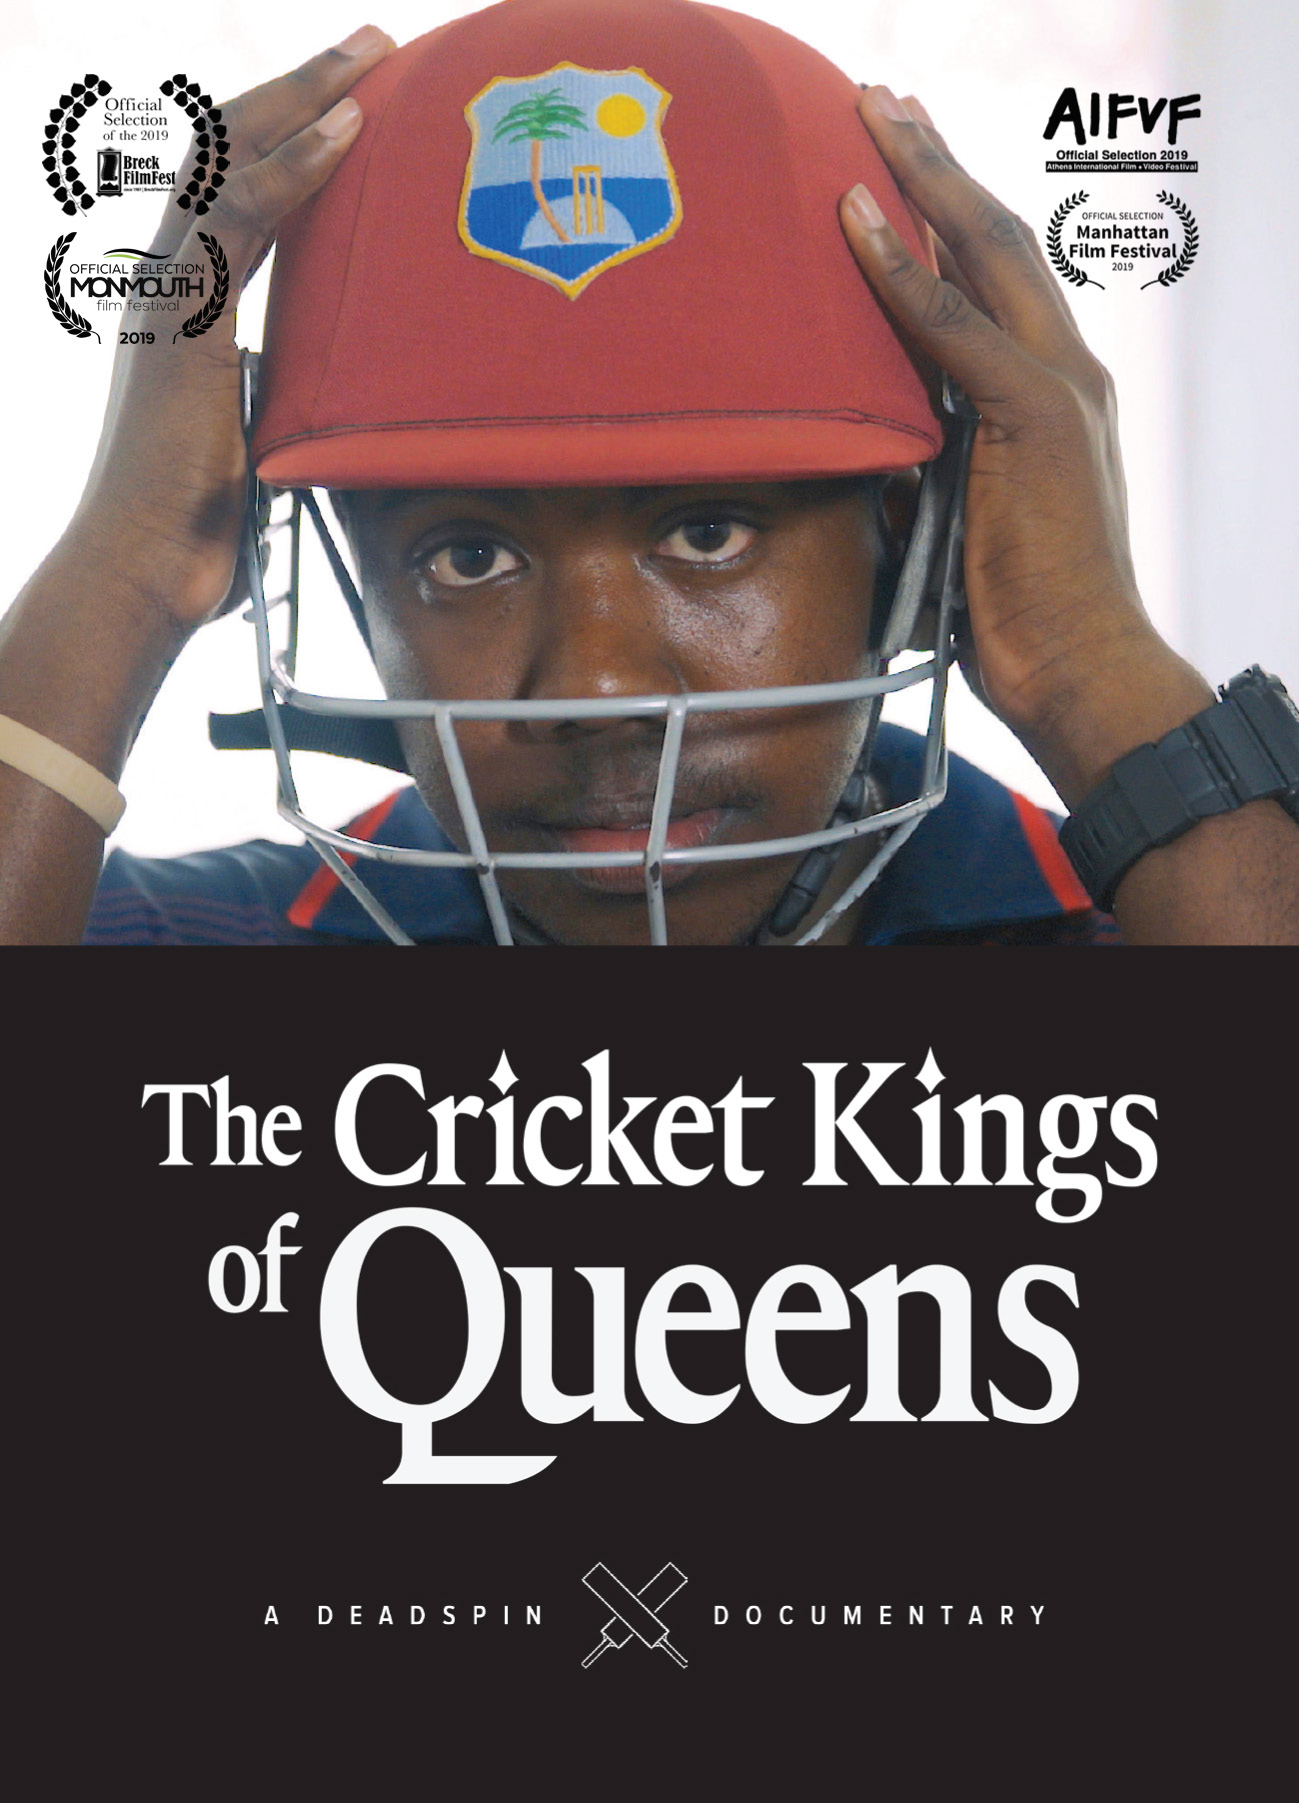 The Cricket Kings of Queens Poster_laurels.jpg